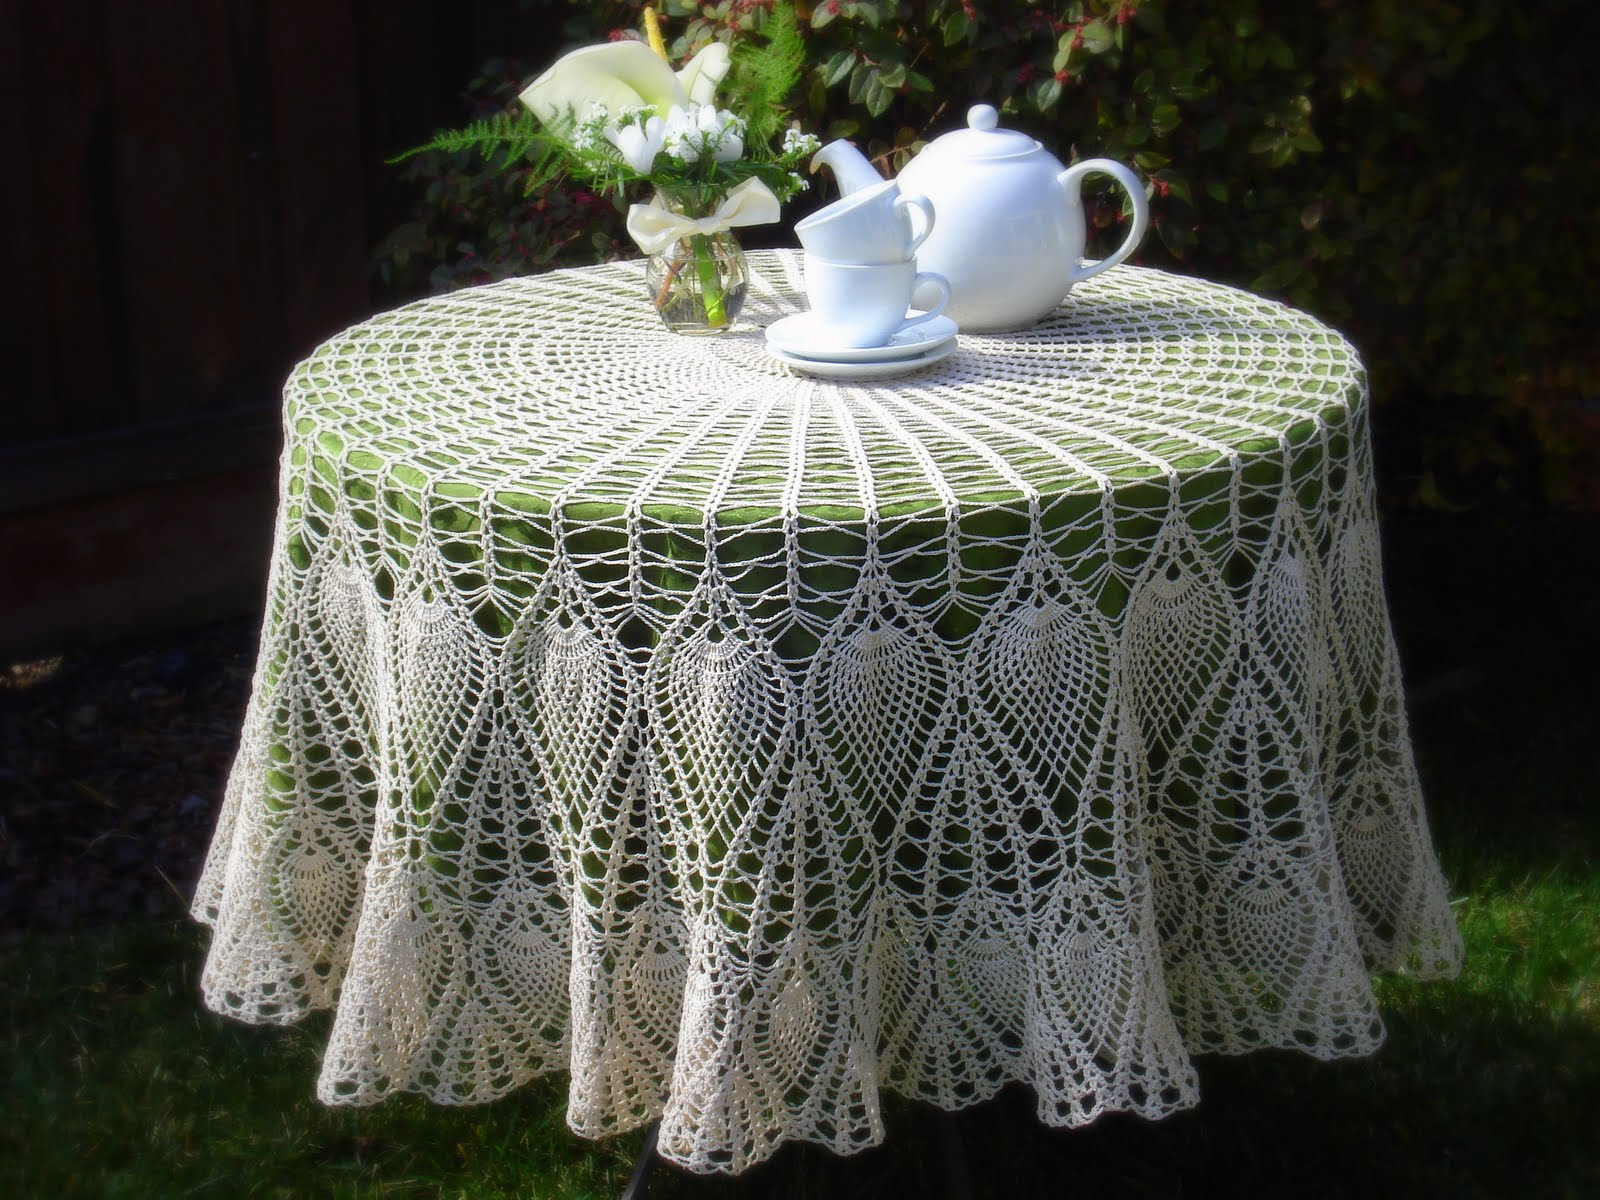 Crochet Tablecloths